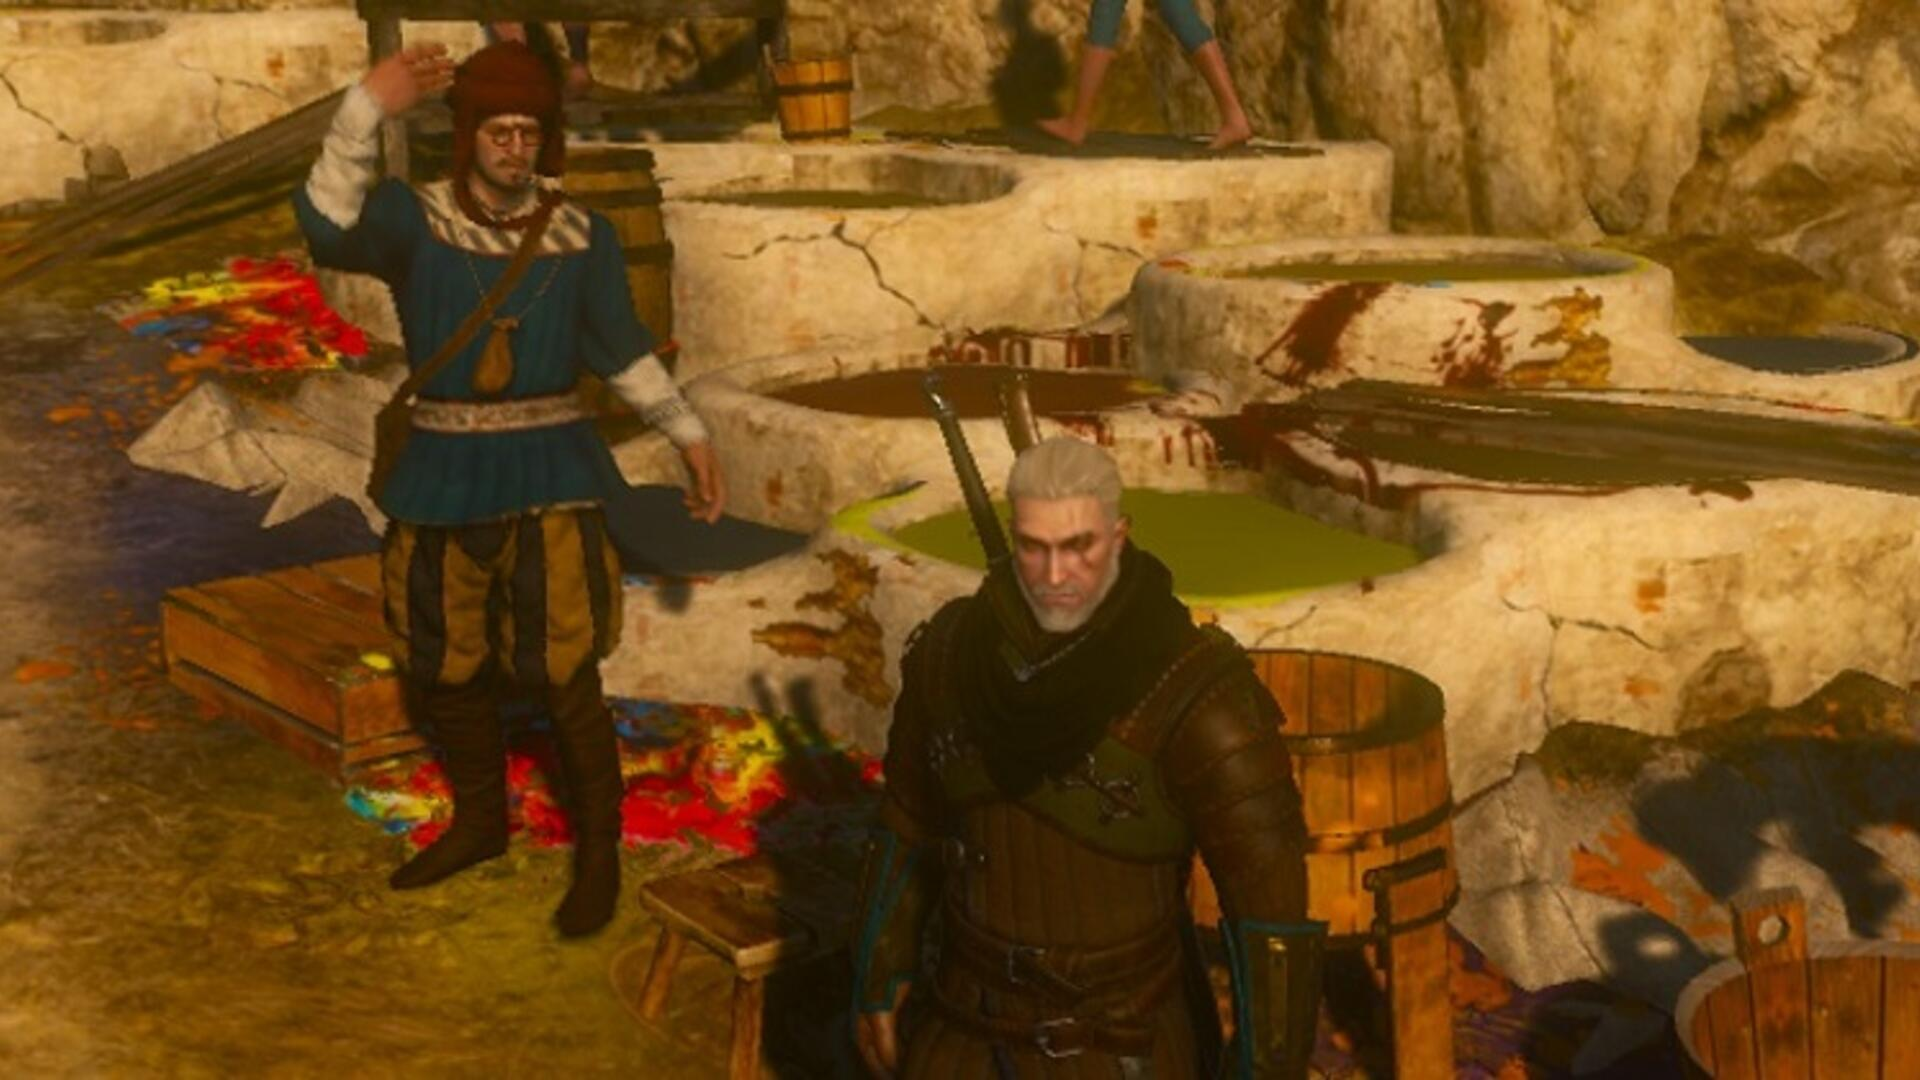 Witcher 3 Armor Mods